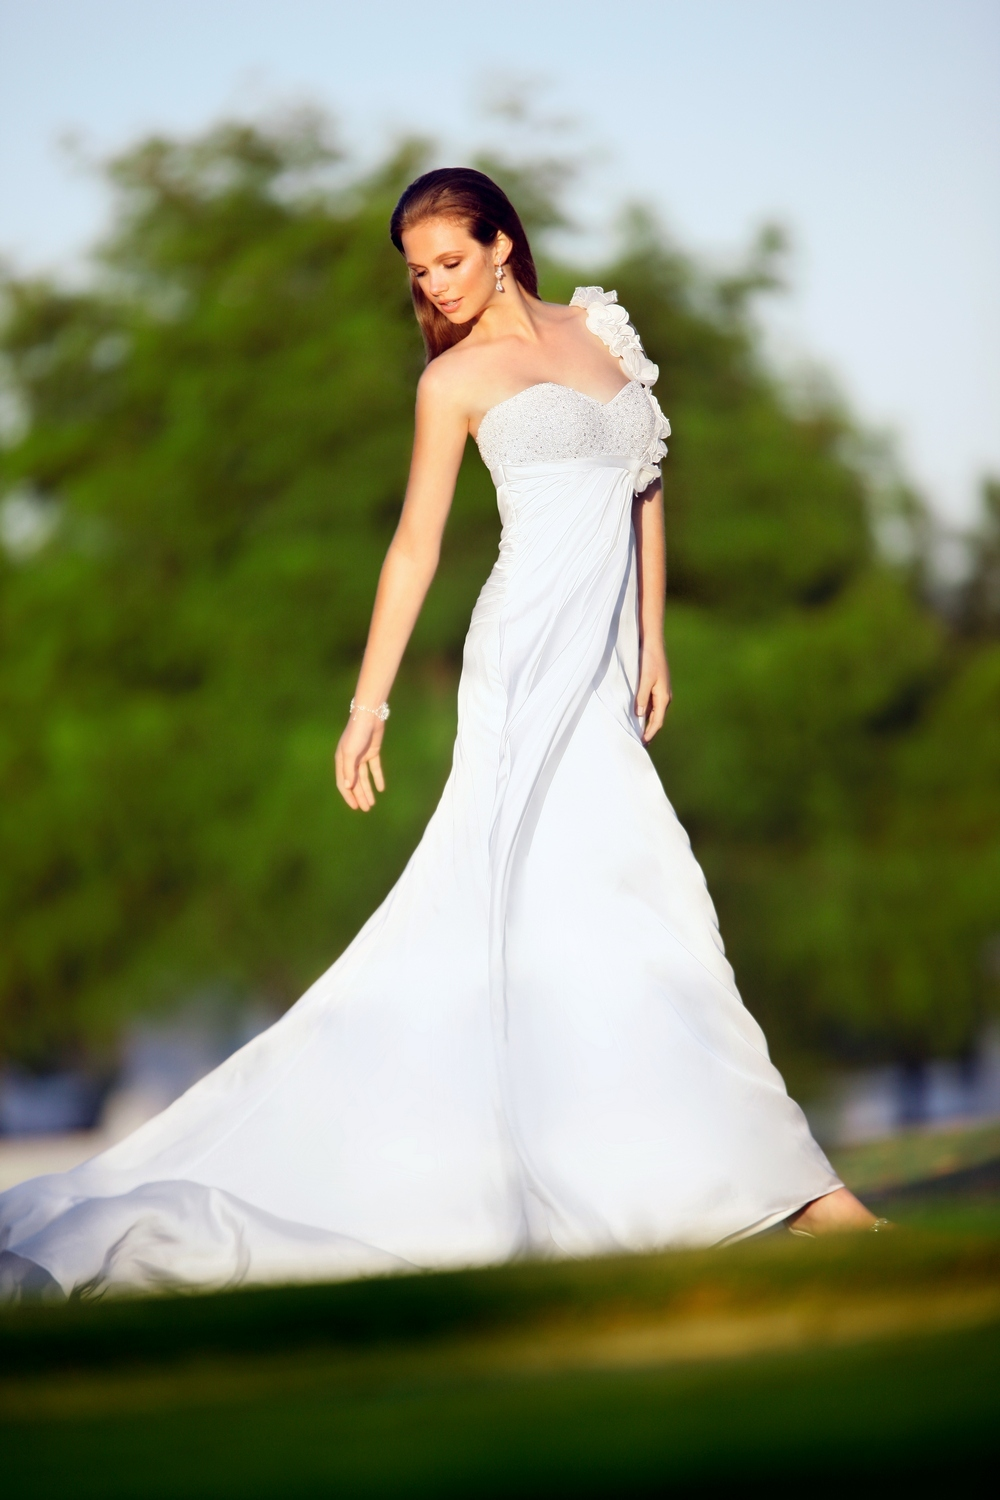 Essense-of-australia-wedding-dresses-2010-2011-d1080-4.full